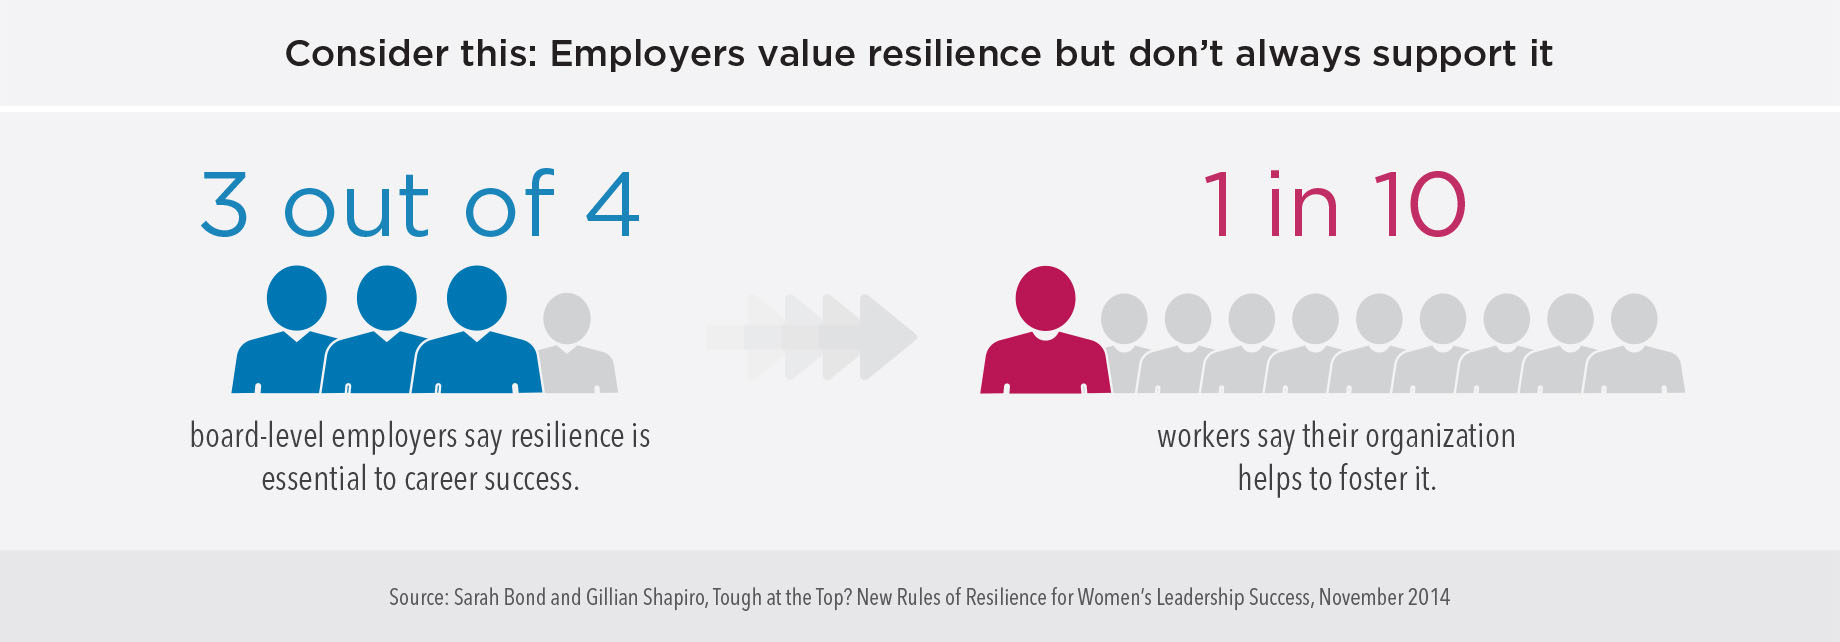 Consider this: Employers value resilience but don't always support it. 3 our of 4 board-level employers say resilience is essential to career success. 1 in 10 workers say their organization helps to foster resilience.